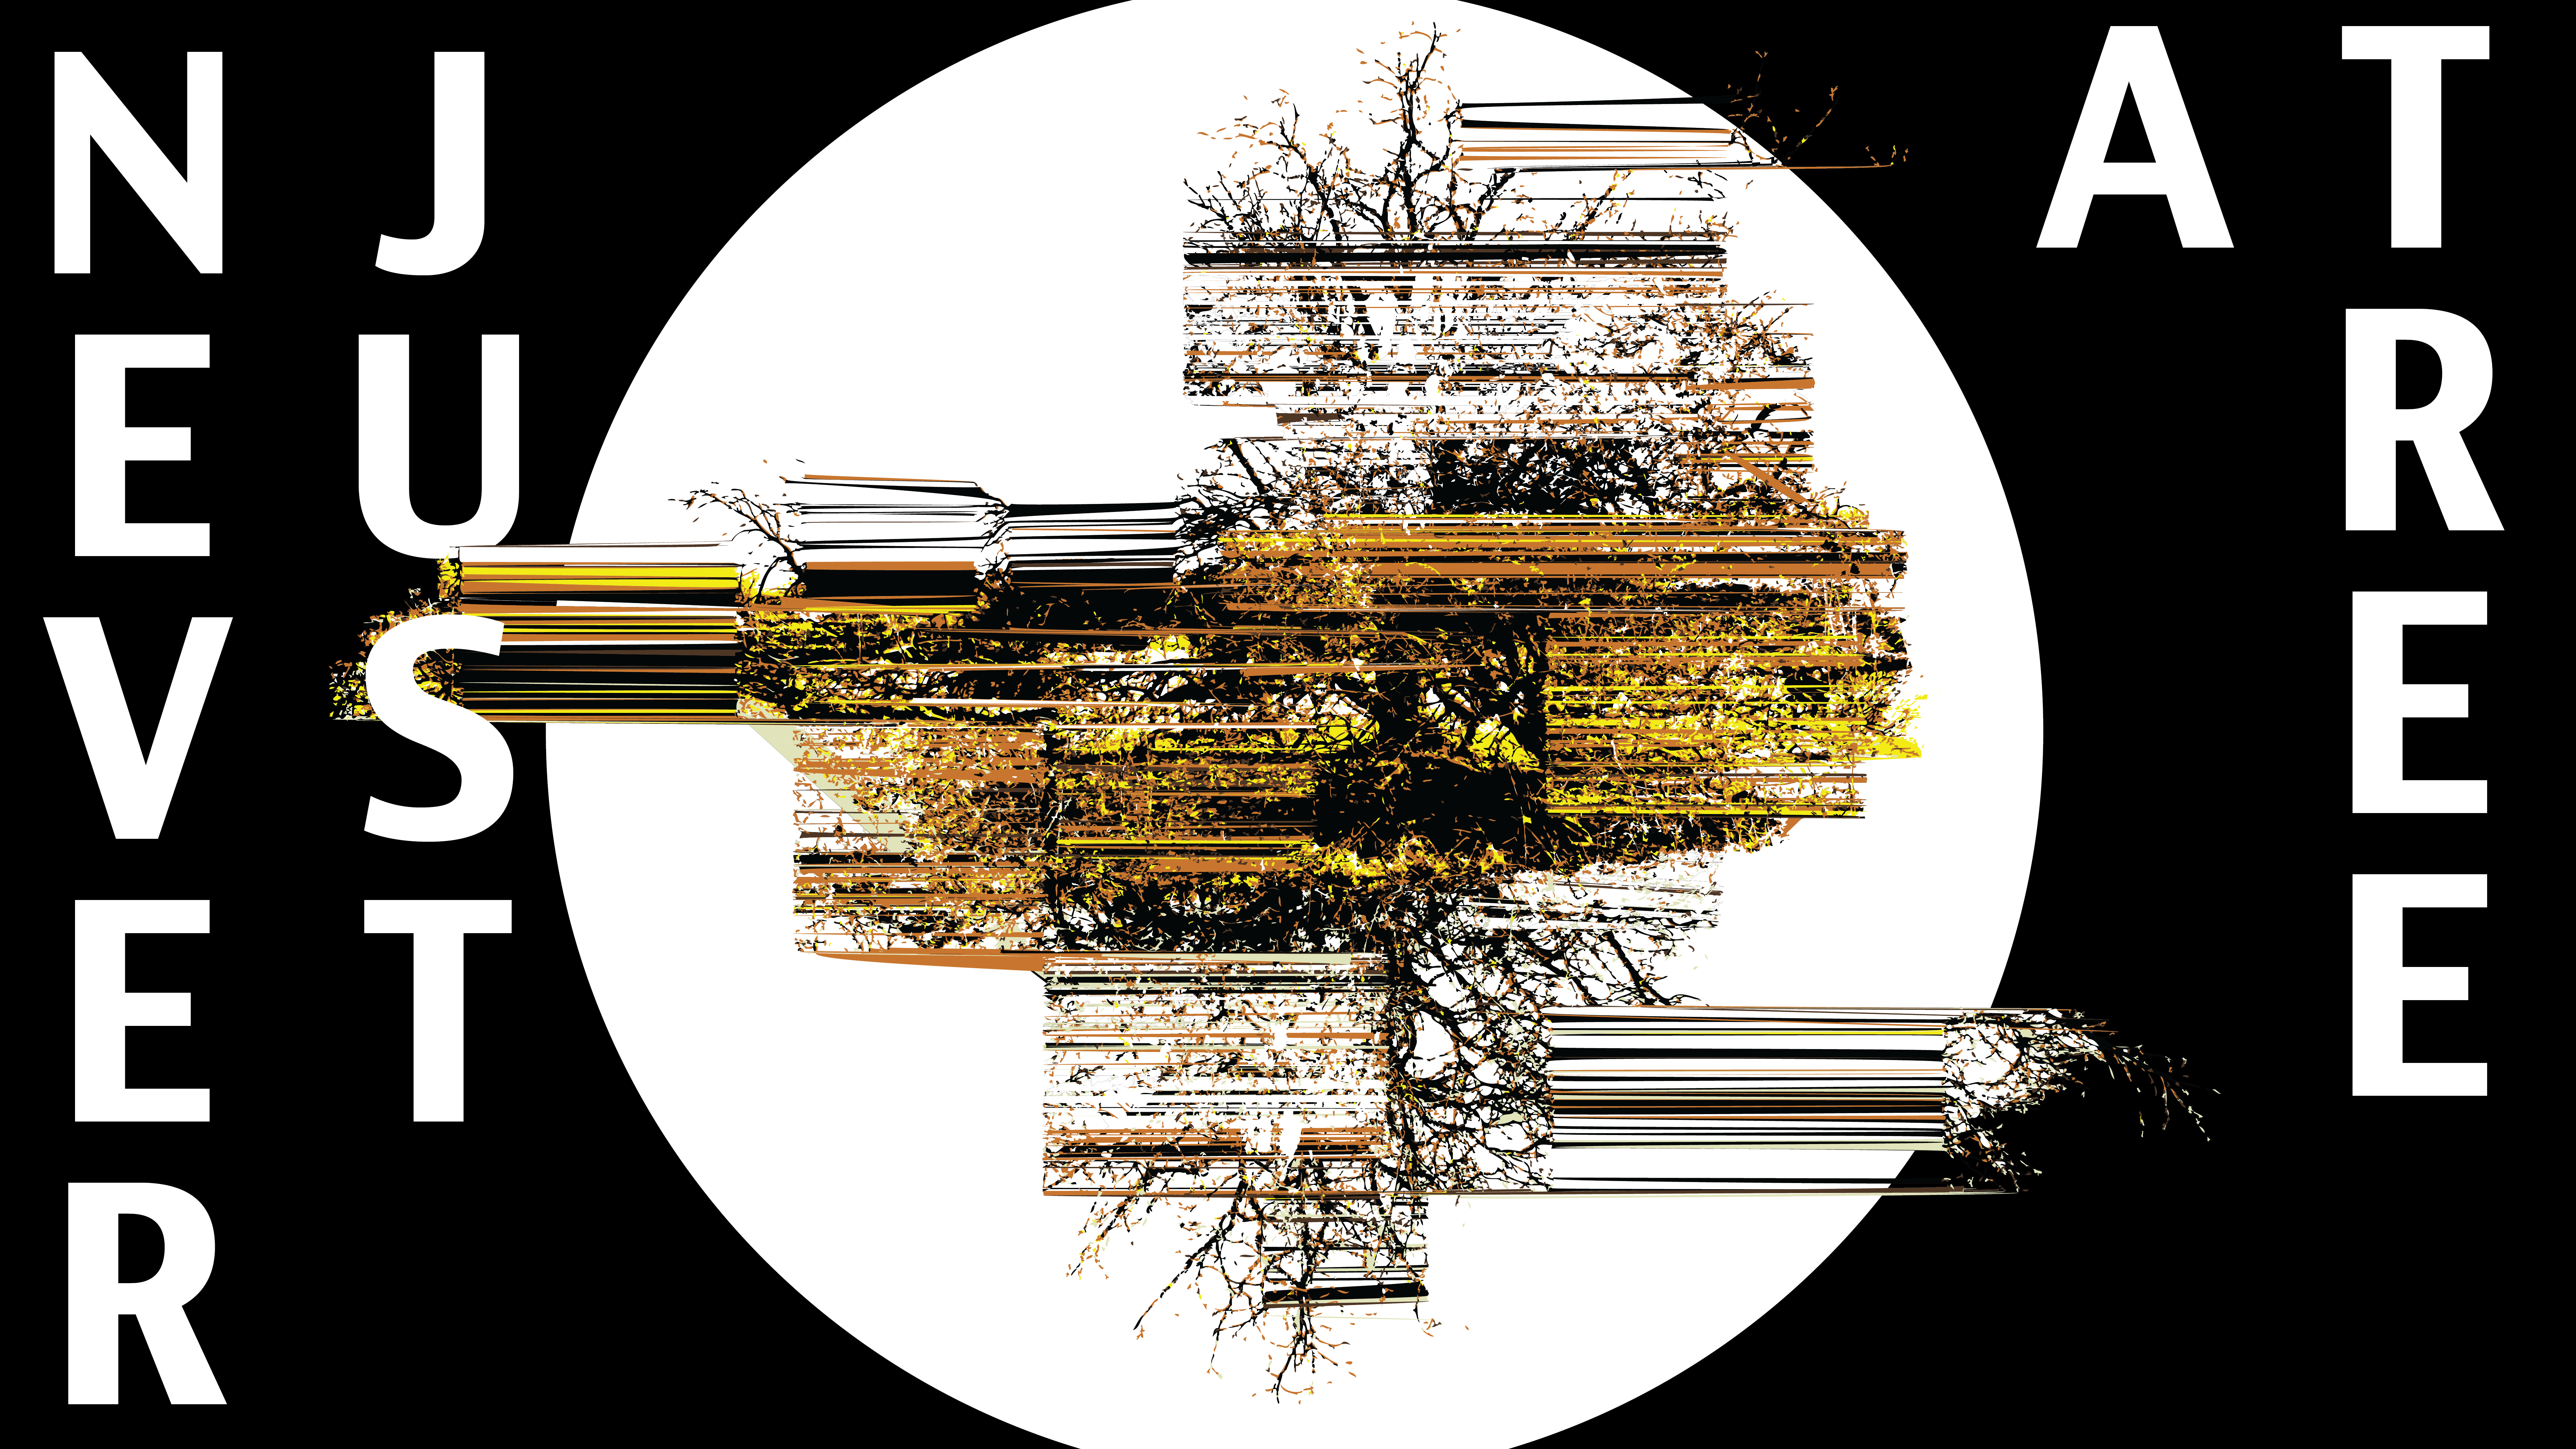 logo image for the project Never Just a Tree by artist Shane Finan, showing a glitched tree on a white circle